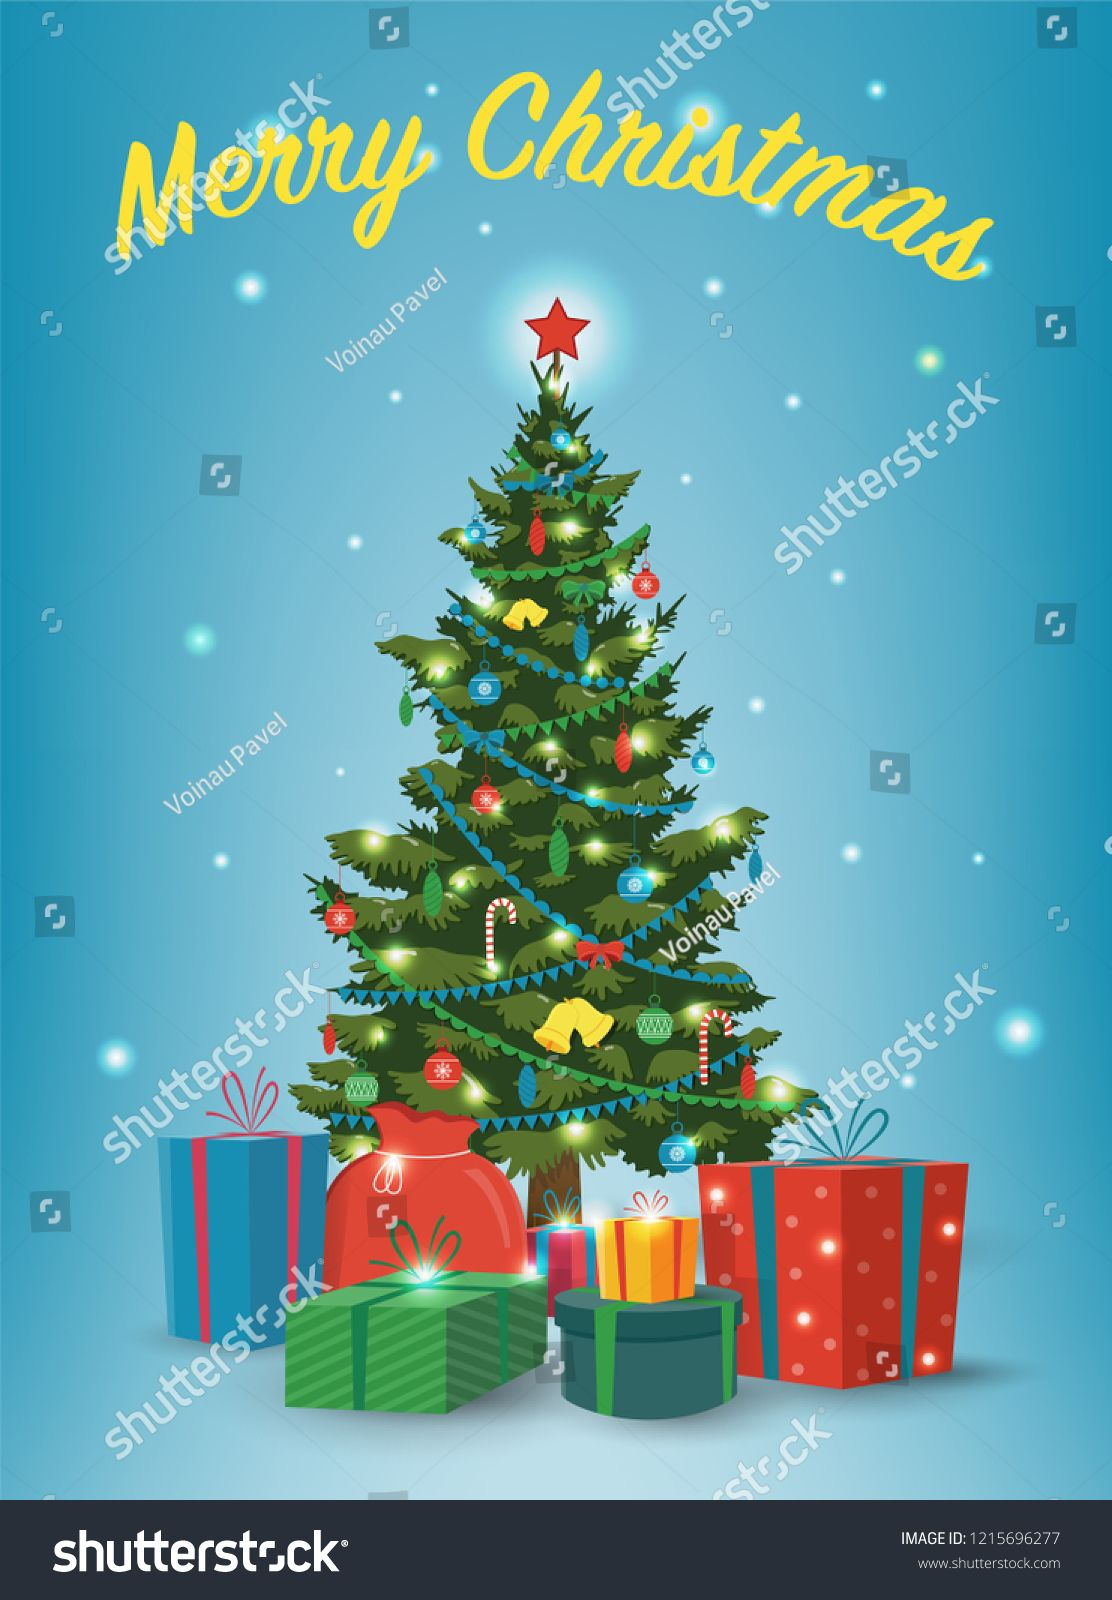 Christmas Tree With Decorations And Gift Boxes Holiday Background Merry Christmas And Happy Christmas Tree Decorations Christmas Tree Tree Wallpaper Nursery Hd wallpaper christmas tree gifts boxes